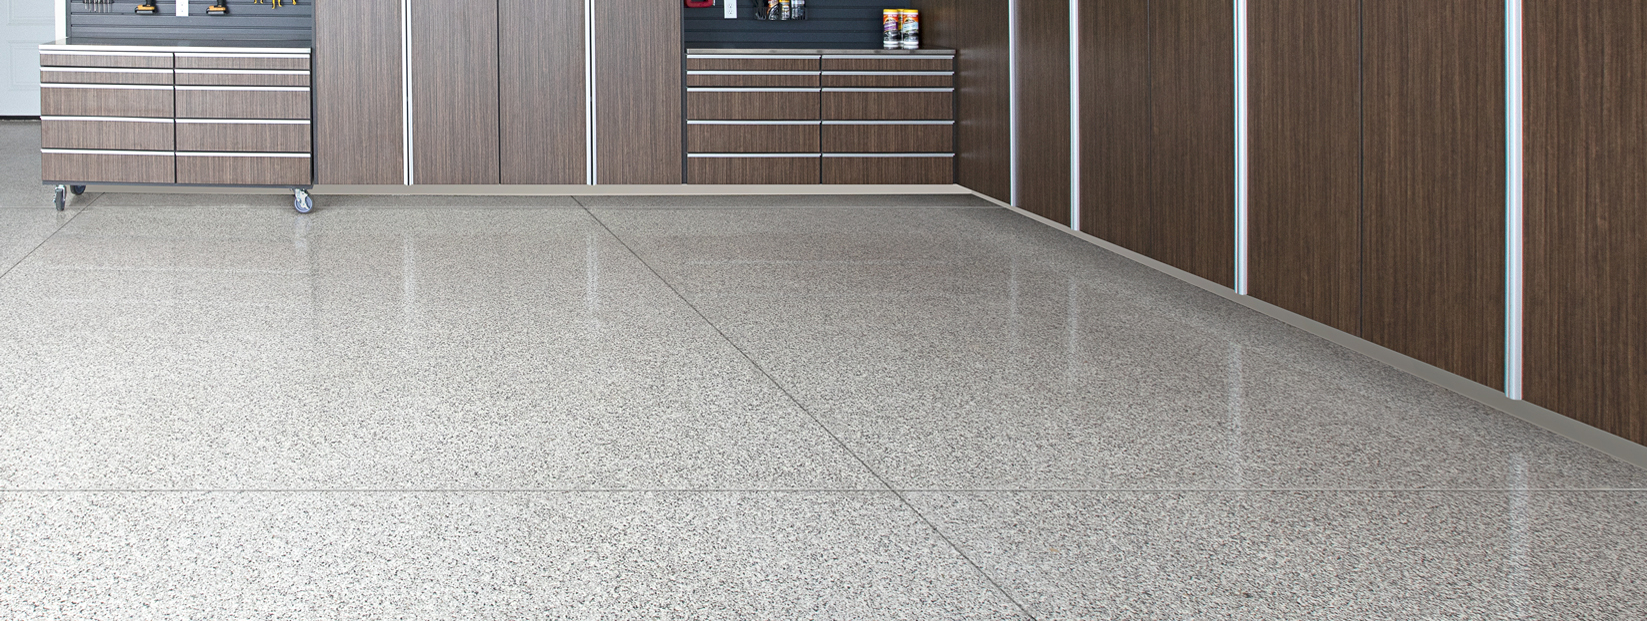 Garage Epoxy Floors Boston